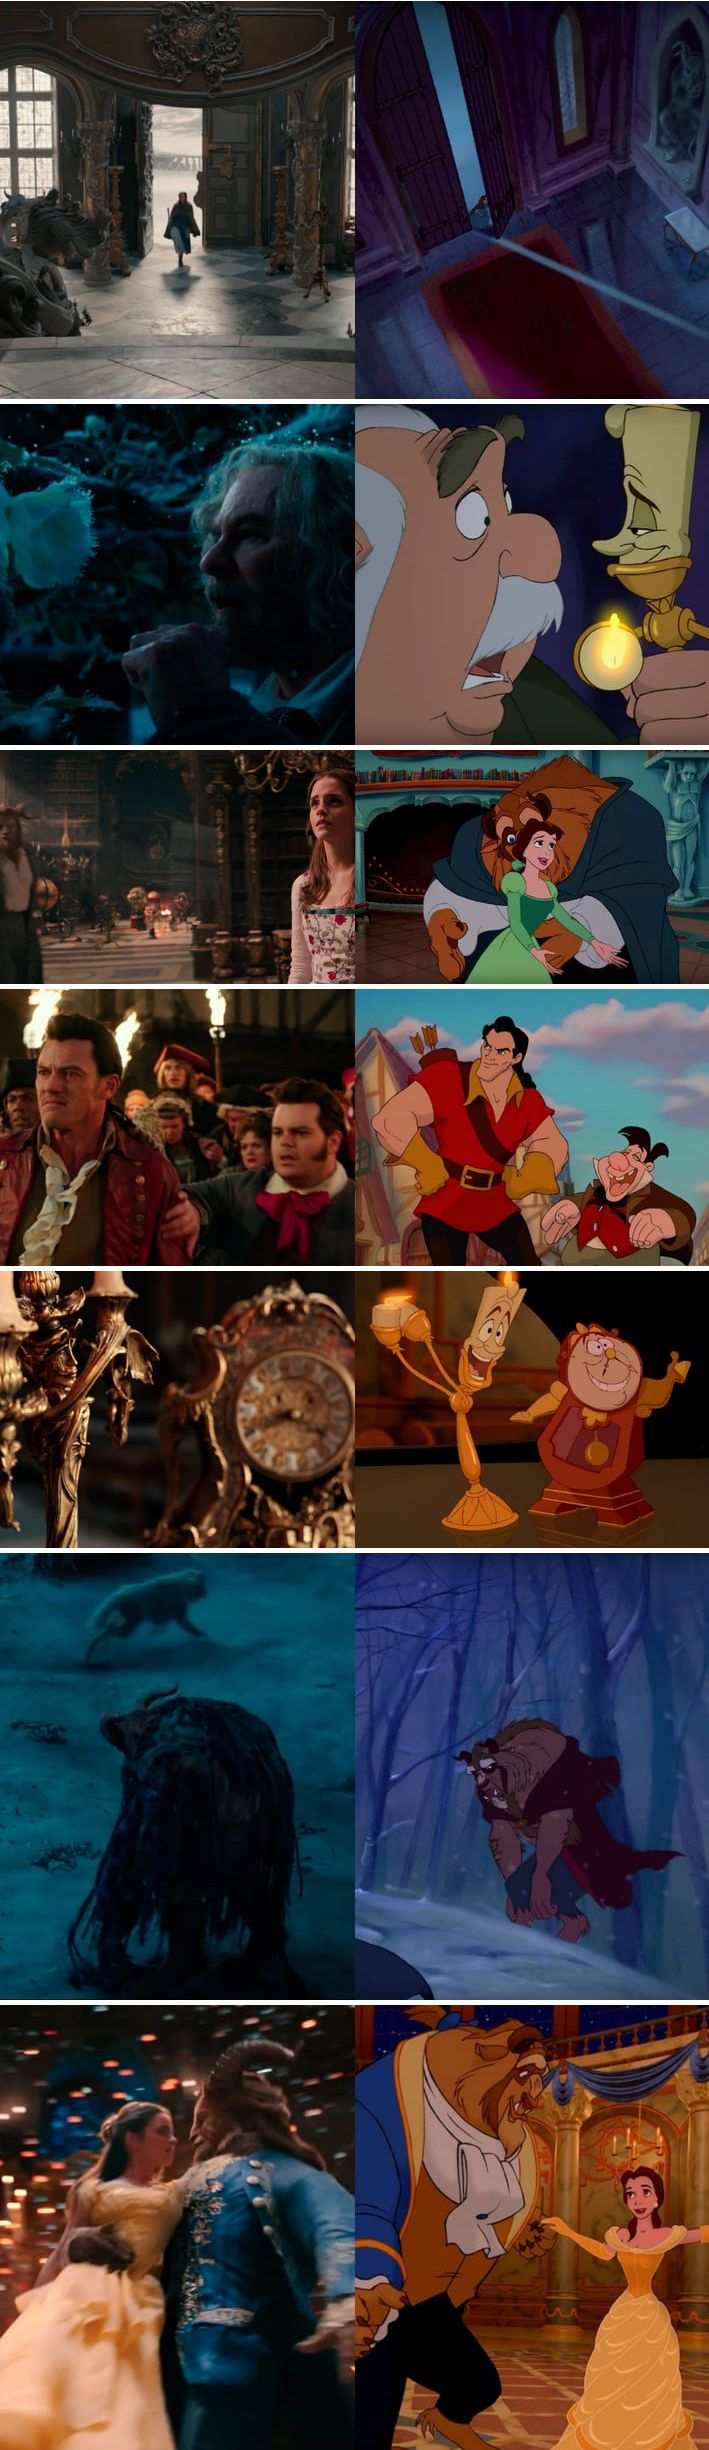 People don't realize how close it's sticking to the animated 'Beauty and the Beast' movie!